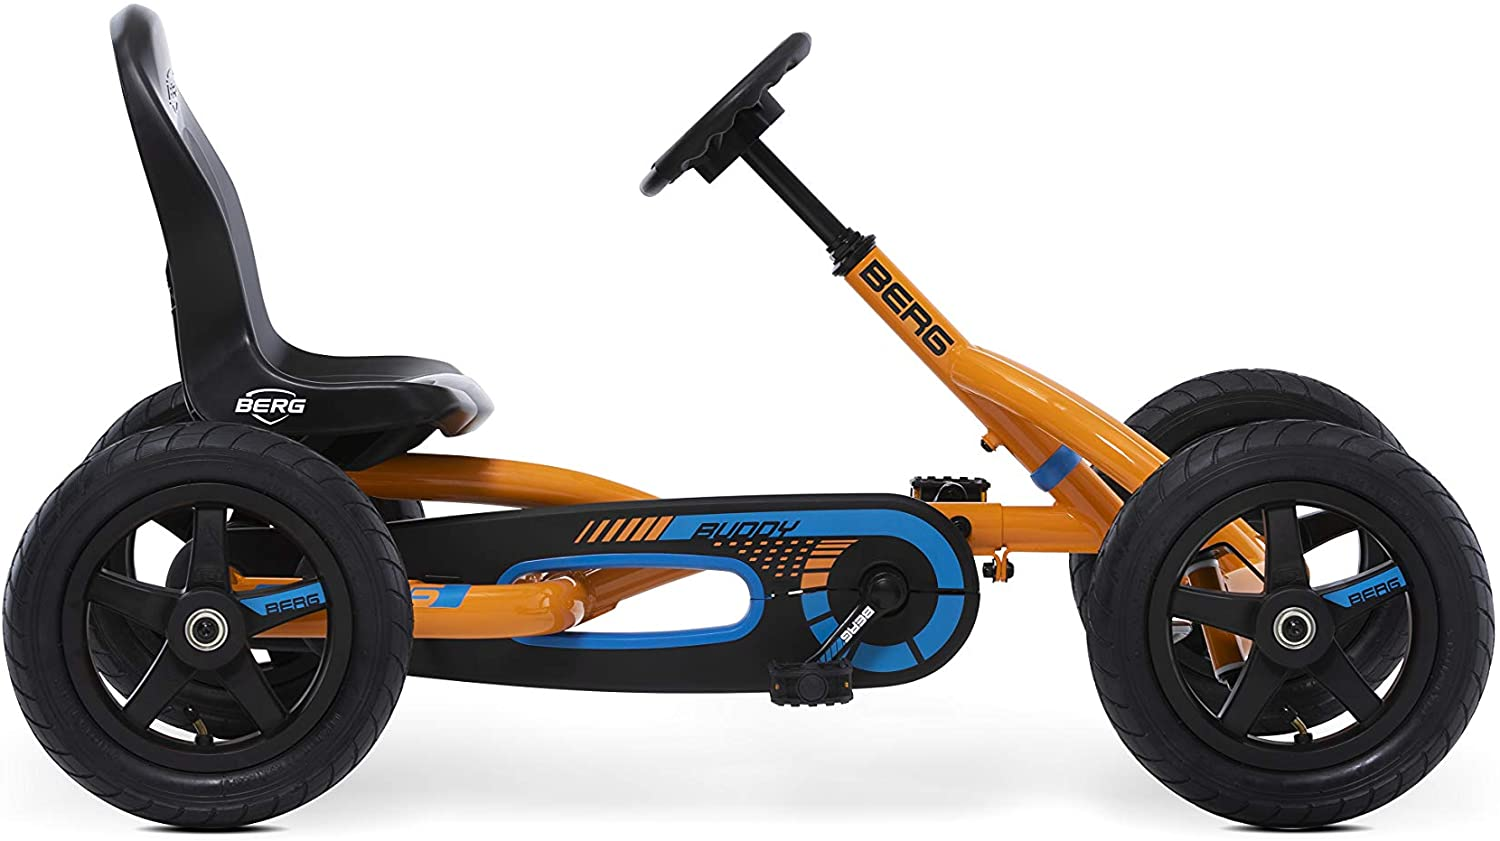 Berg Pedal Car Buddy B-Orange | Pedal Go Kart, Ride On Toys for Boys and Girls, Go Kart, Outdoor Games and Outdoor Toys, Adaptable to Body Lenght, Pedal Cart, Go Cart for Ages 3-8 Years